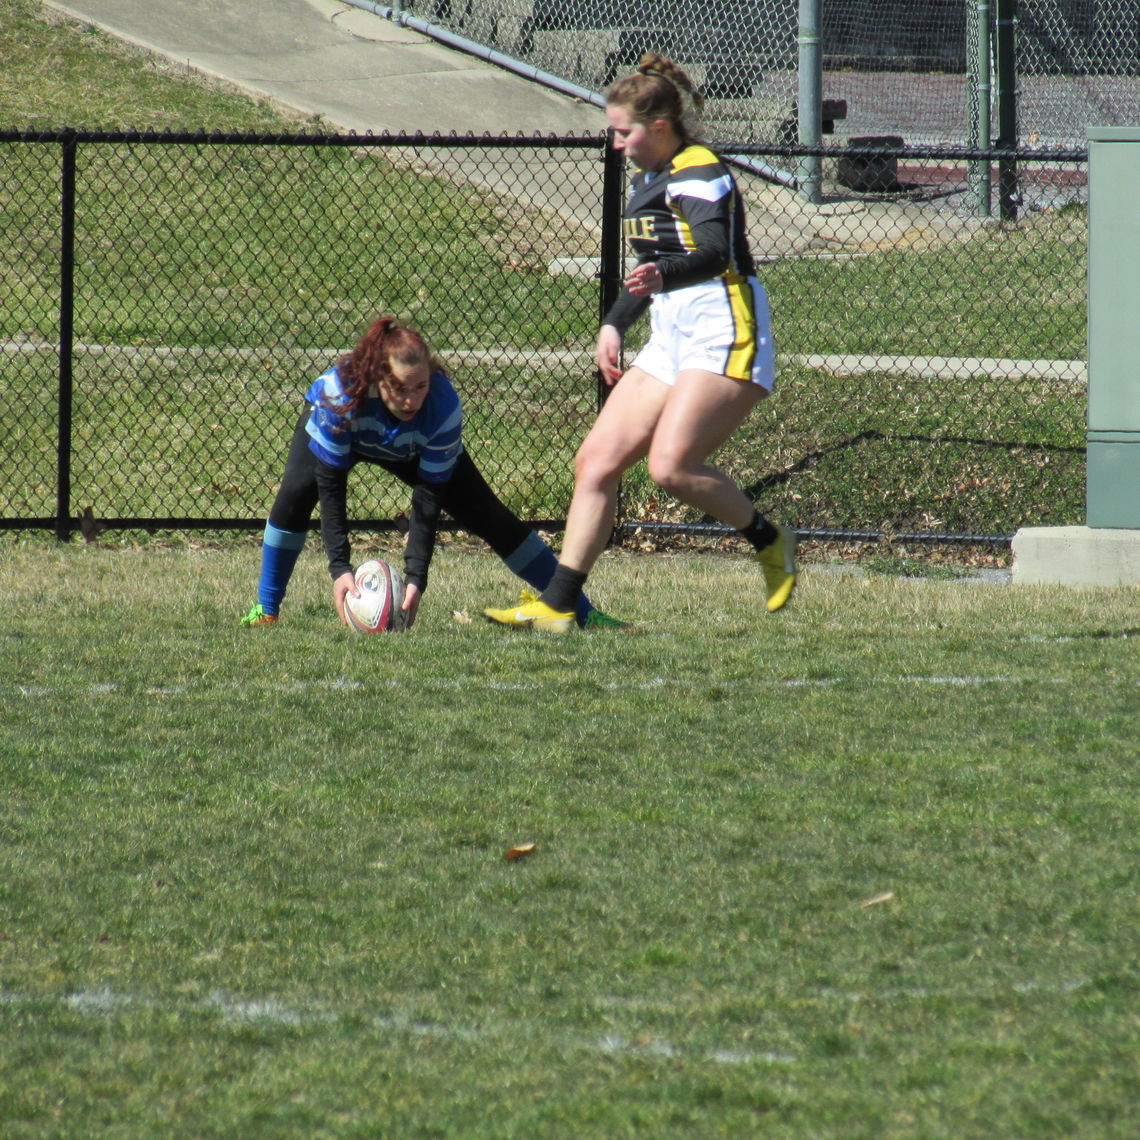 Ellie scores a try